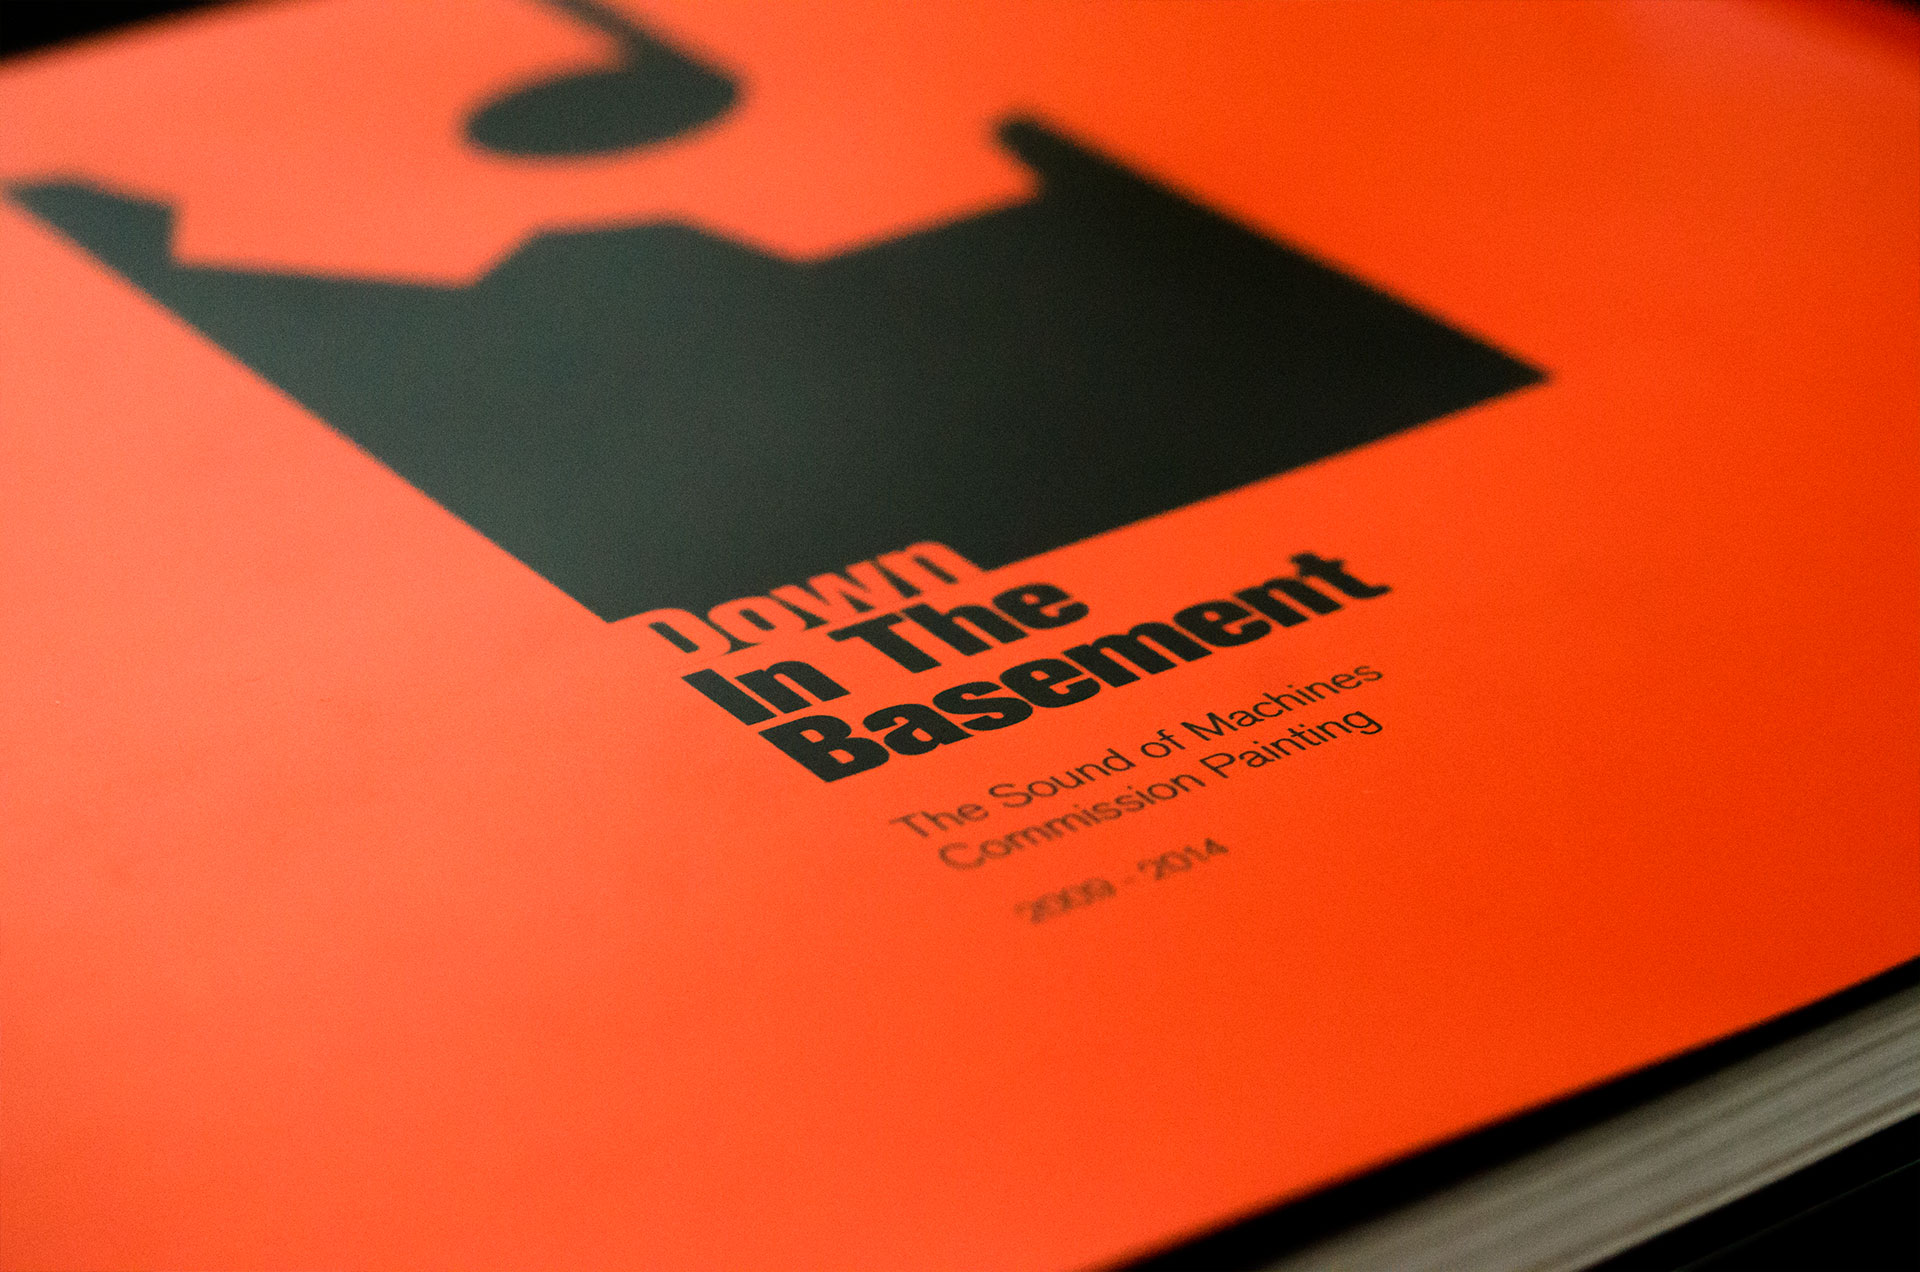 Down In The Basement Book Layout 2014